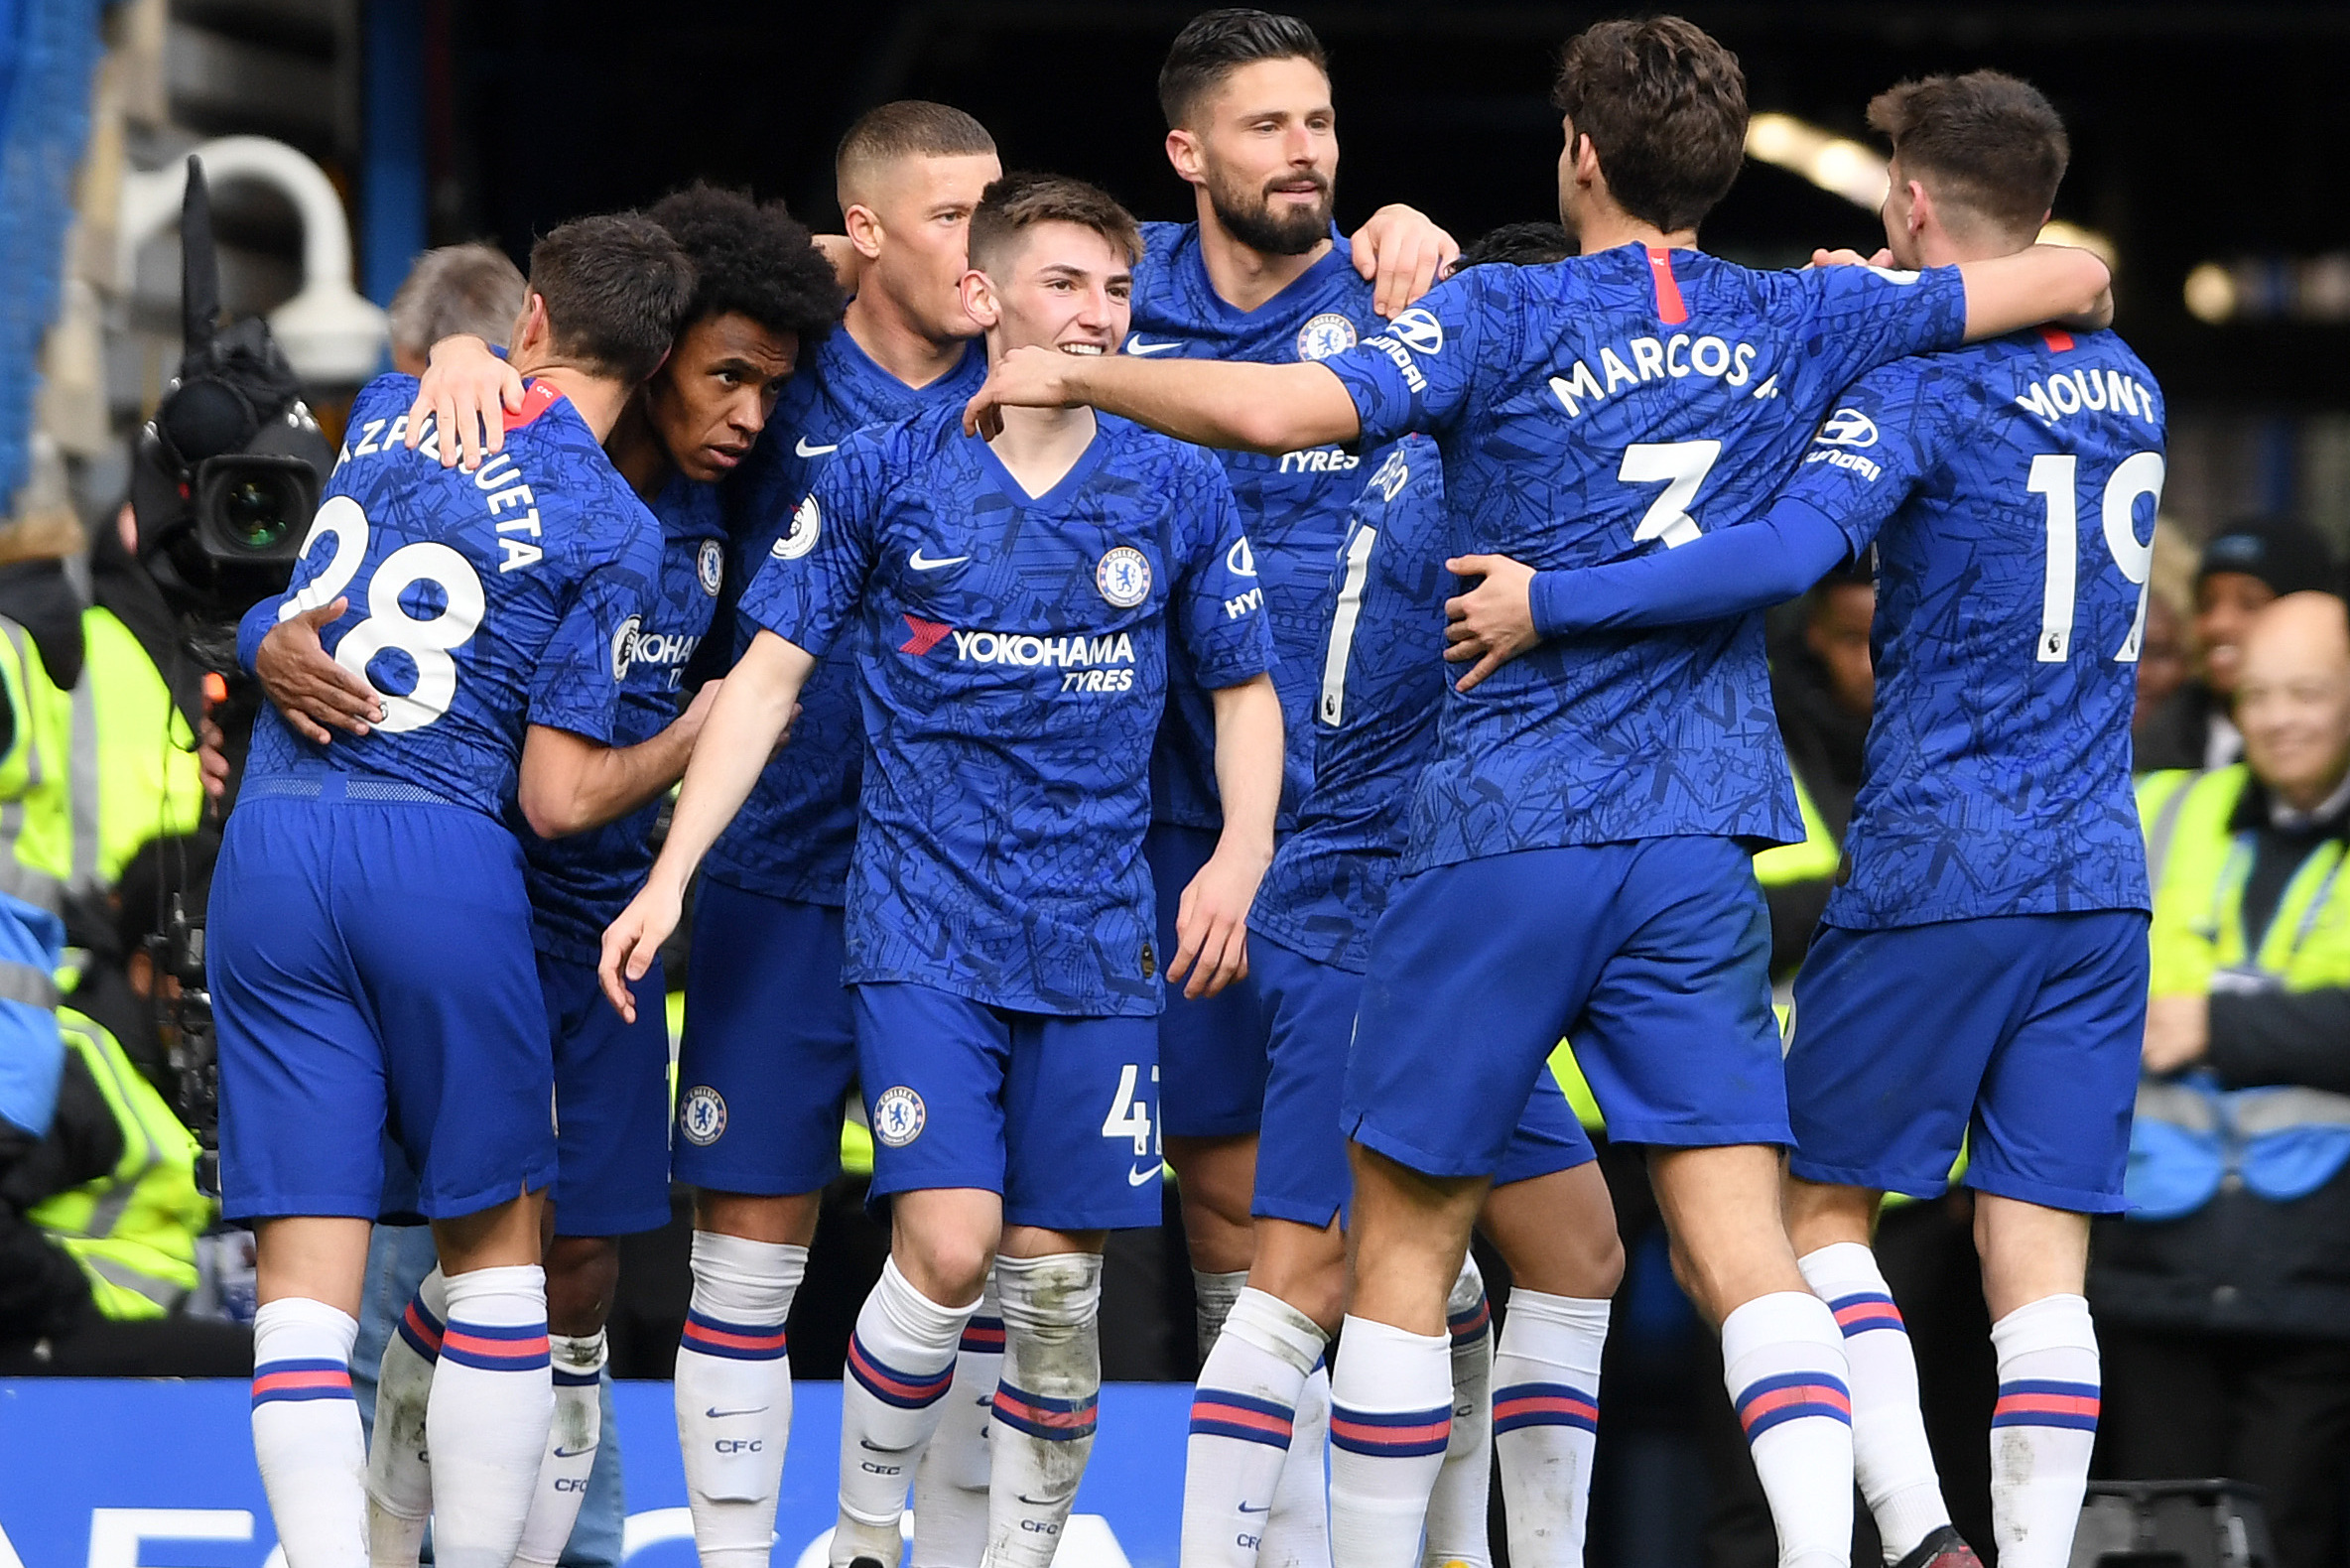 Premier League Table Week 29 Sunday S 2020 Epl Top Scorers And Results Bleacher Report Latest News Videos And Highlights